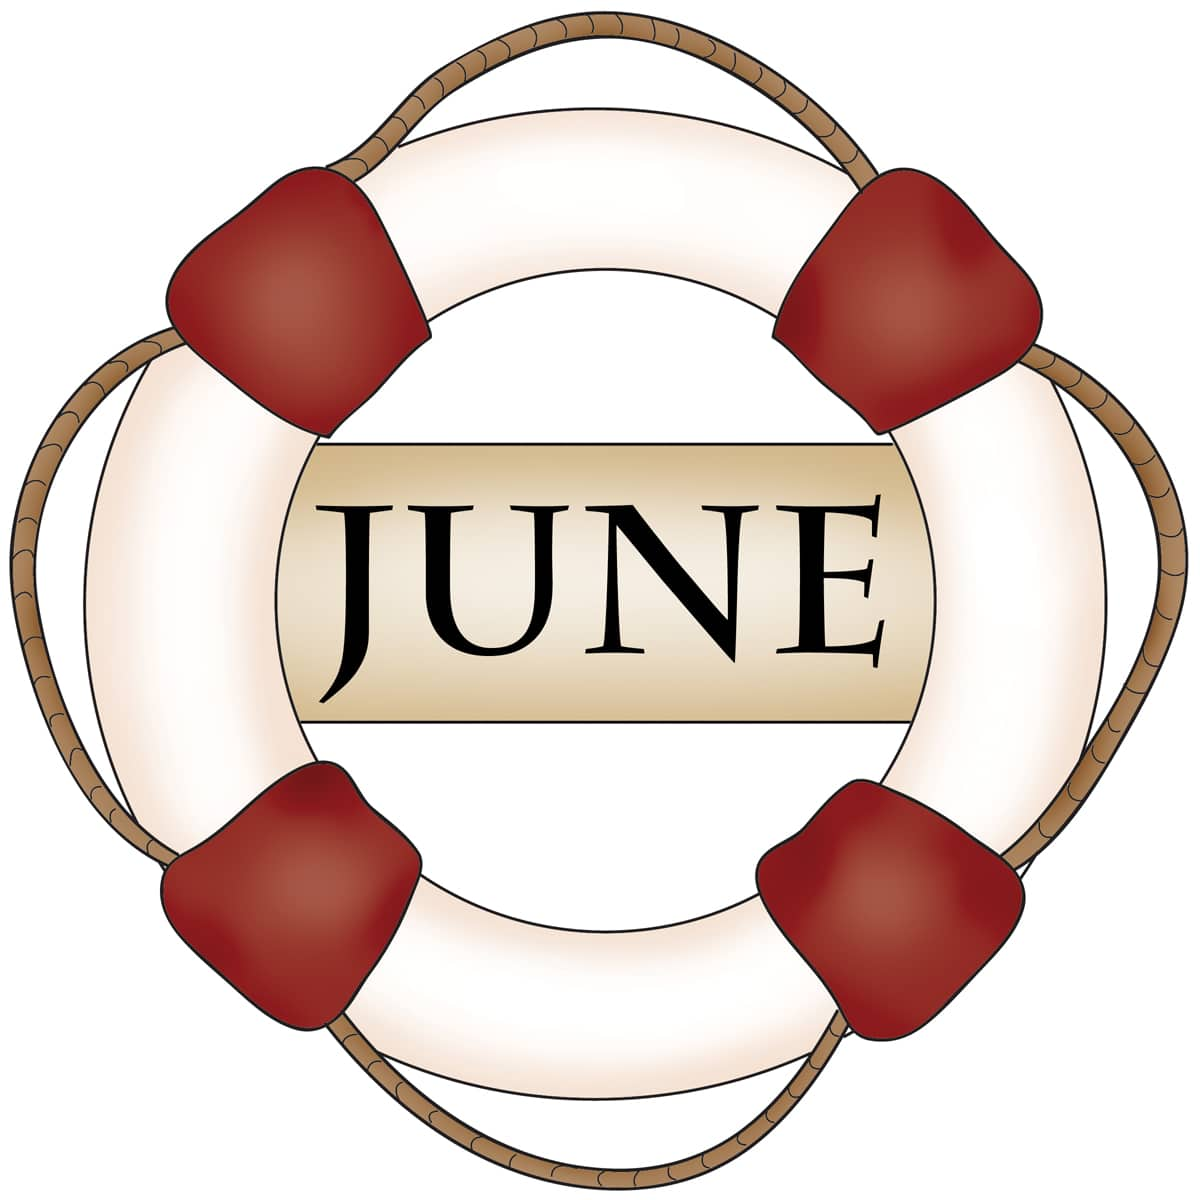 June Month 2017 Clip art Pictures